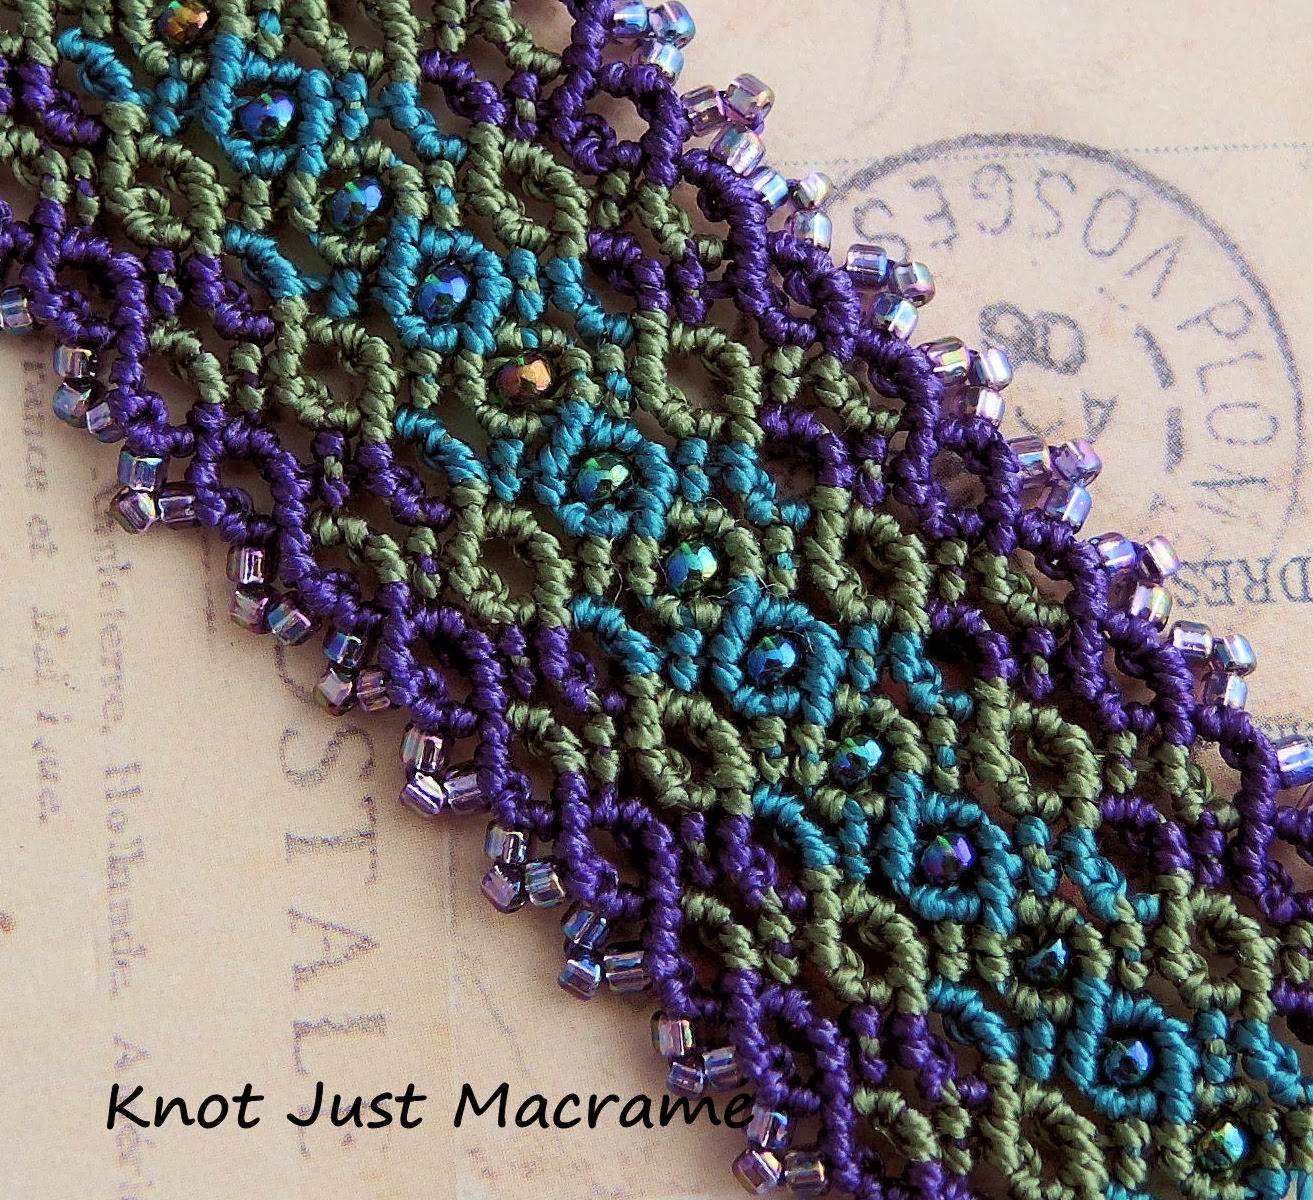 Knotted curves micro macrame in purple, olive and teal